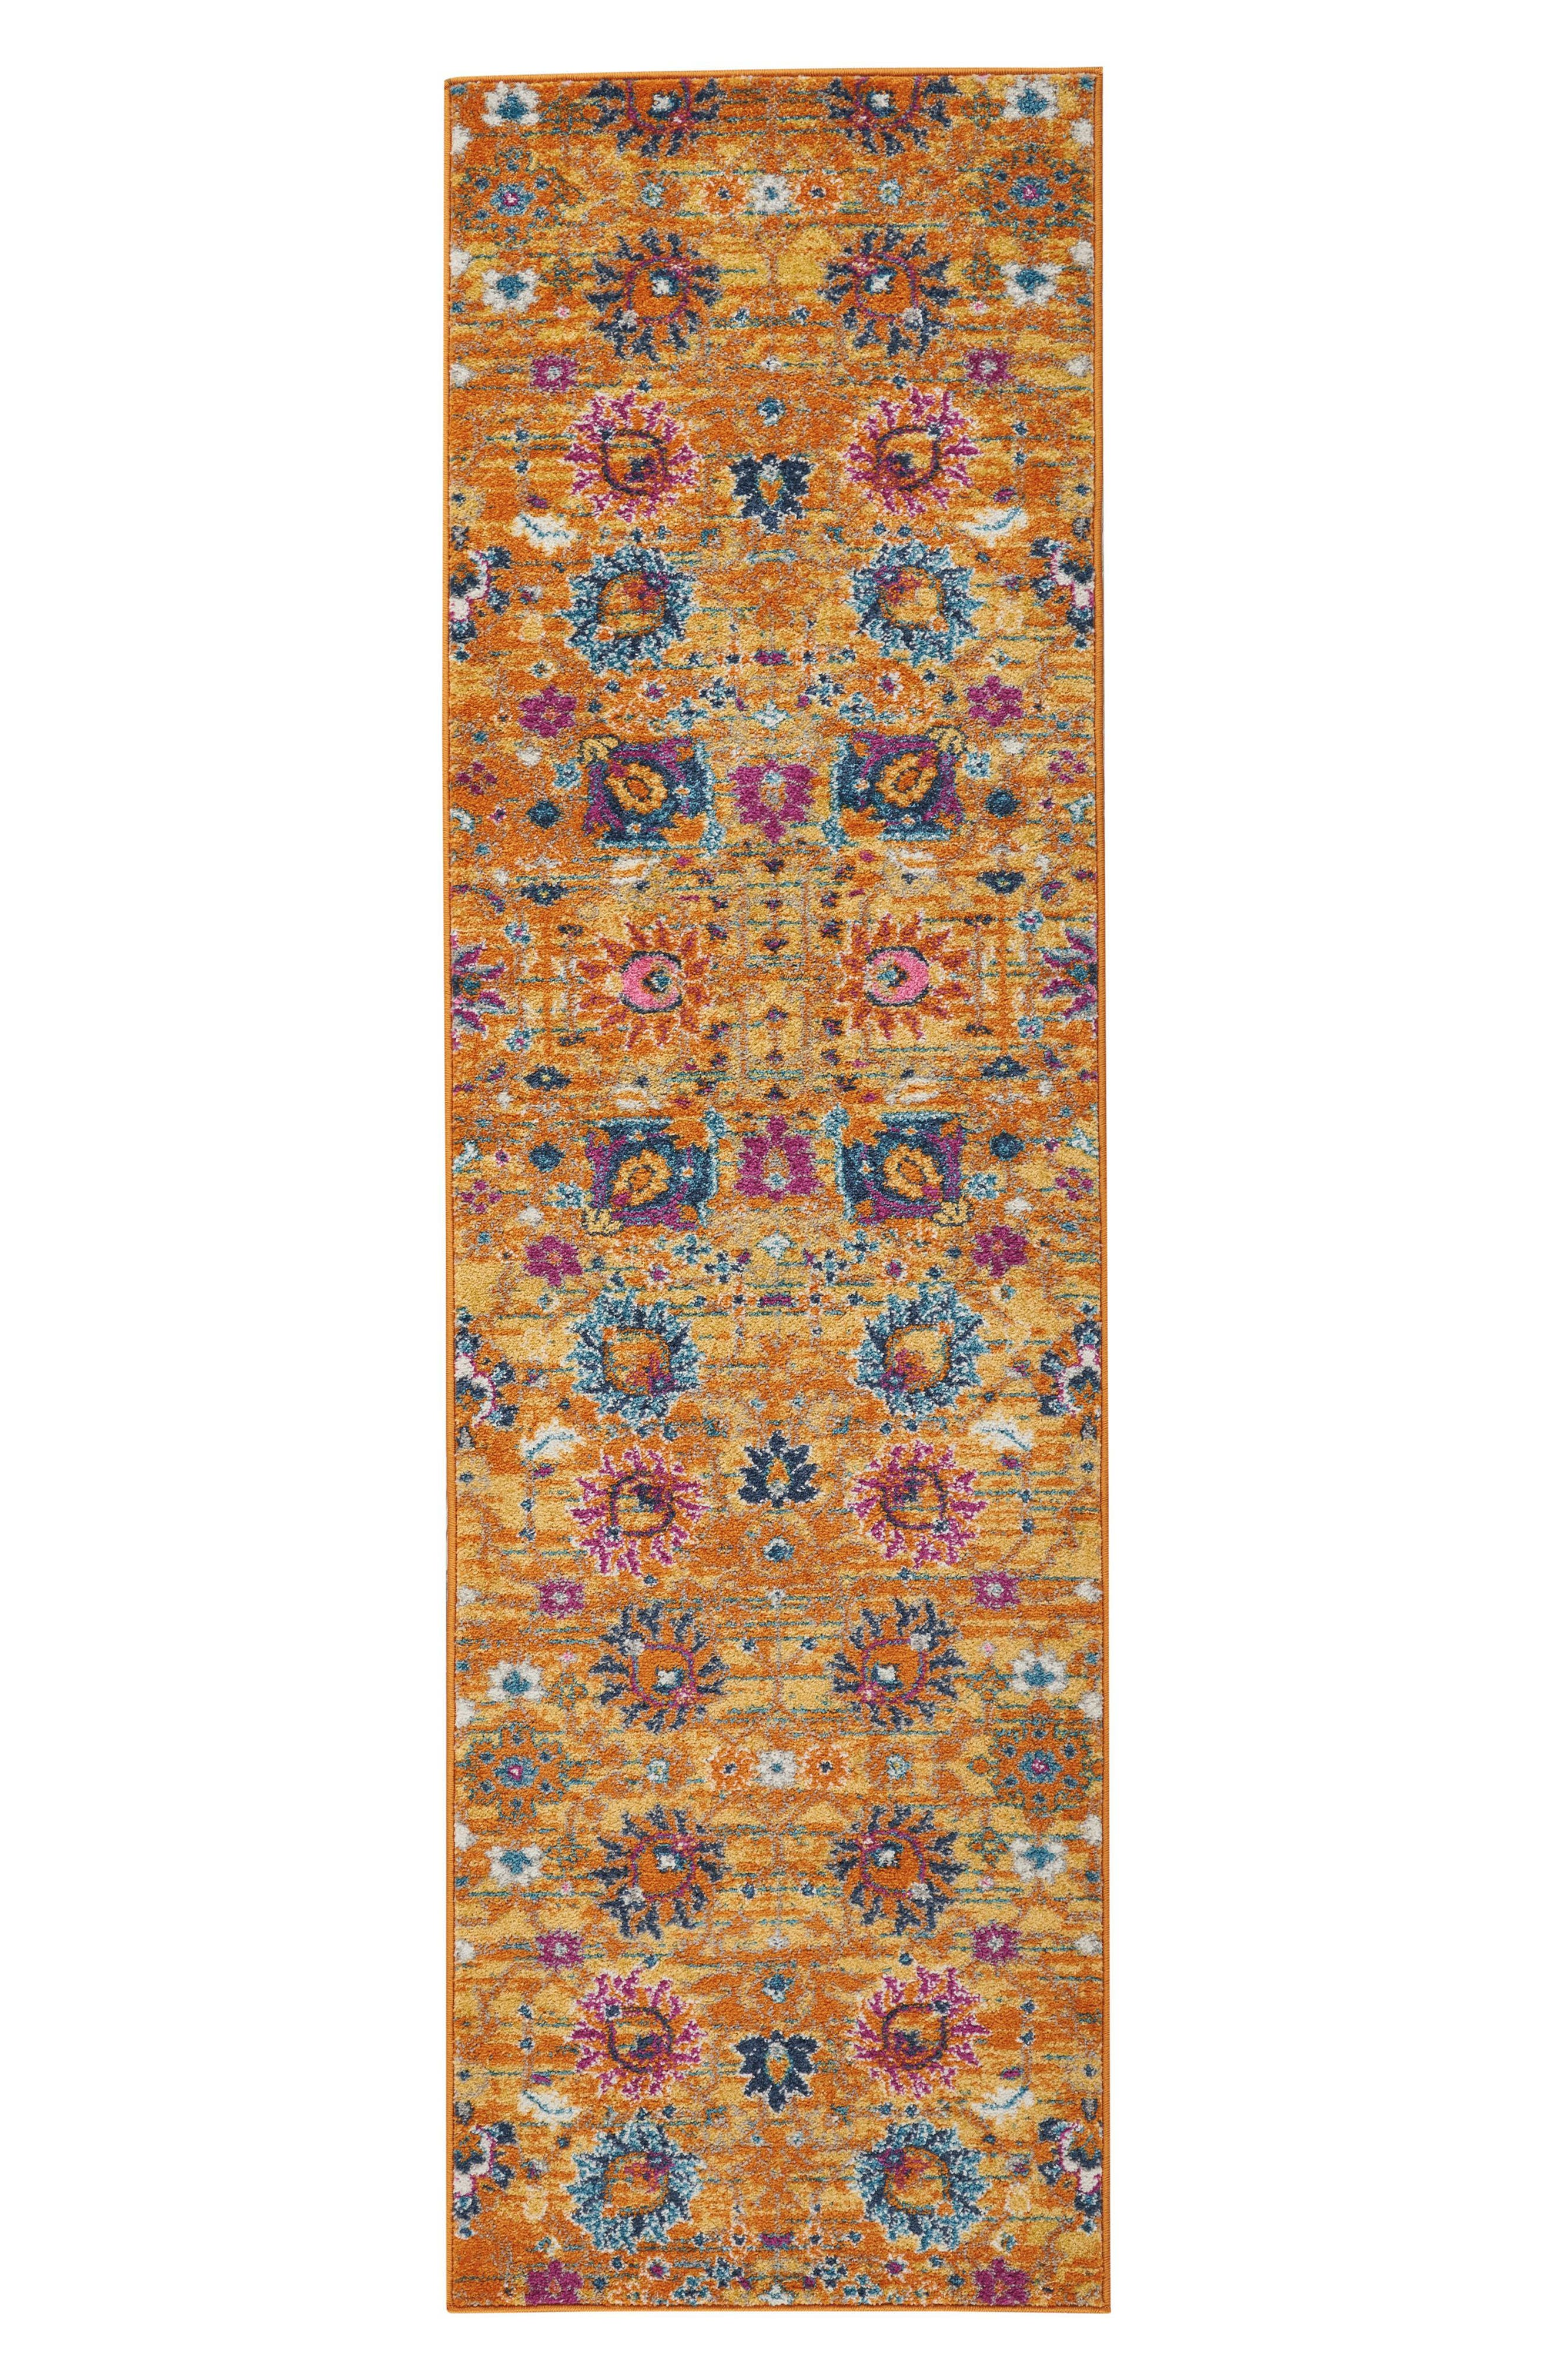 Sunburst Rug,                             Main thumbnail 1, color,                             800